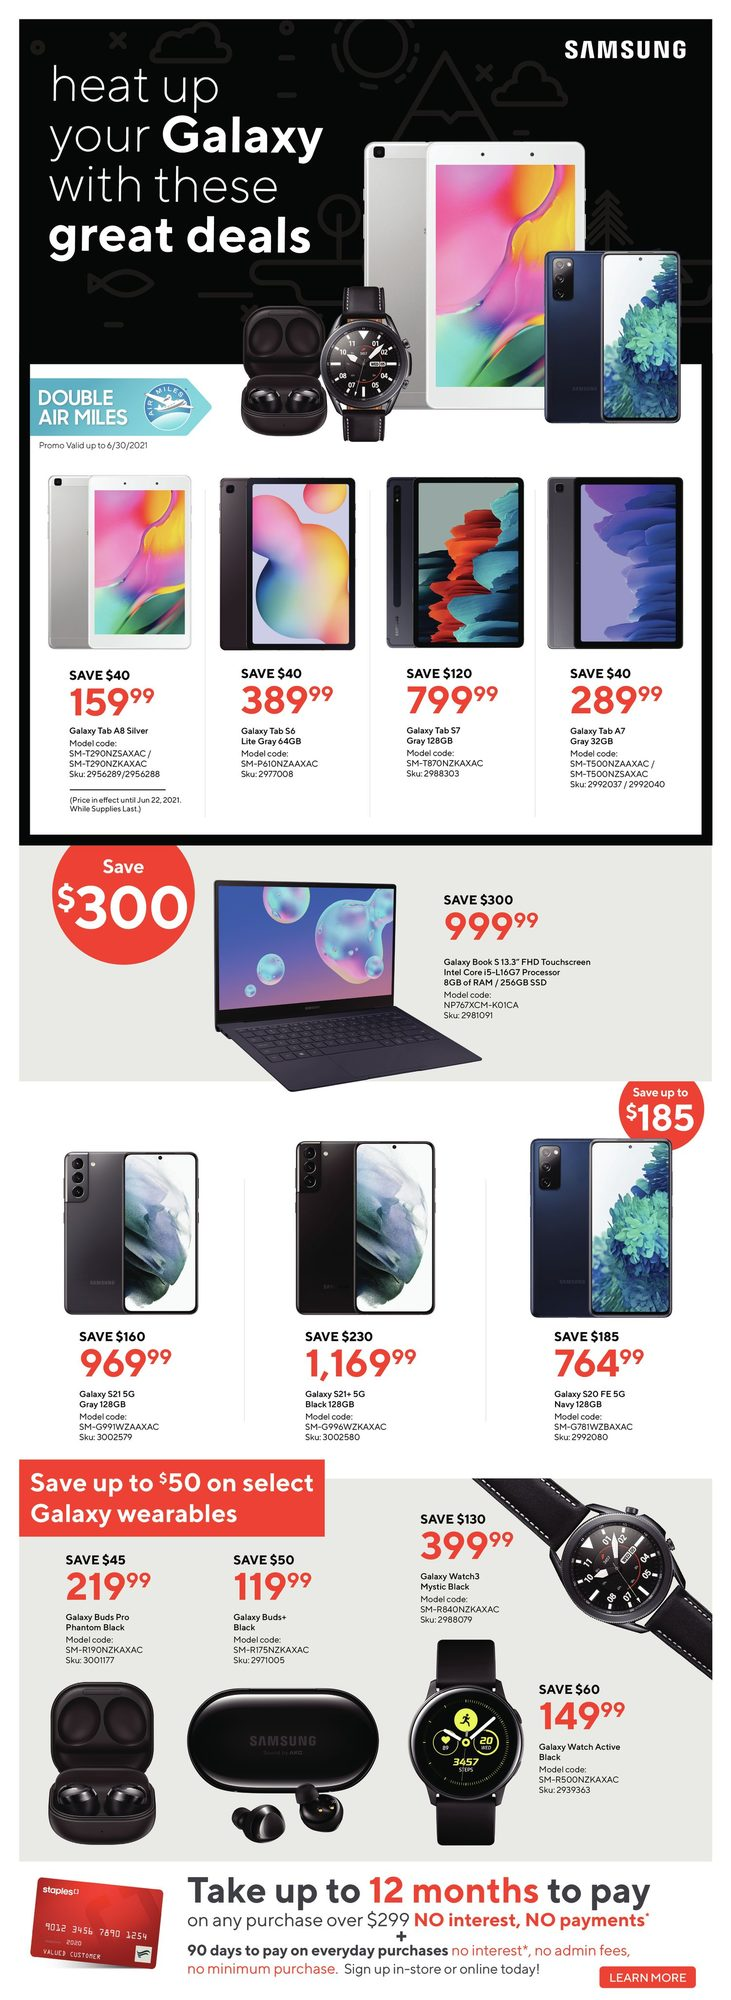 Staples - Weekly Flyer Specials - Page 13